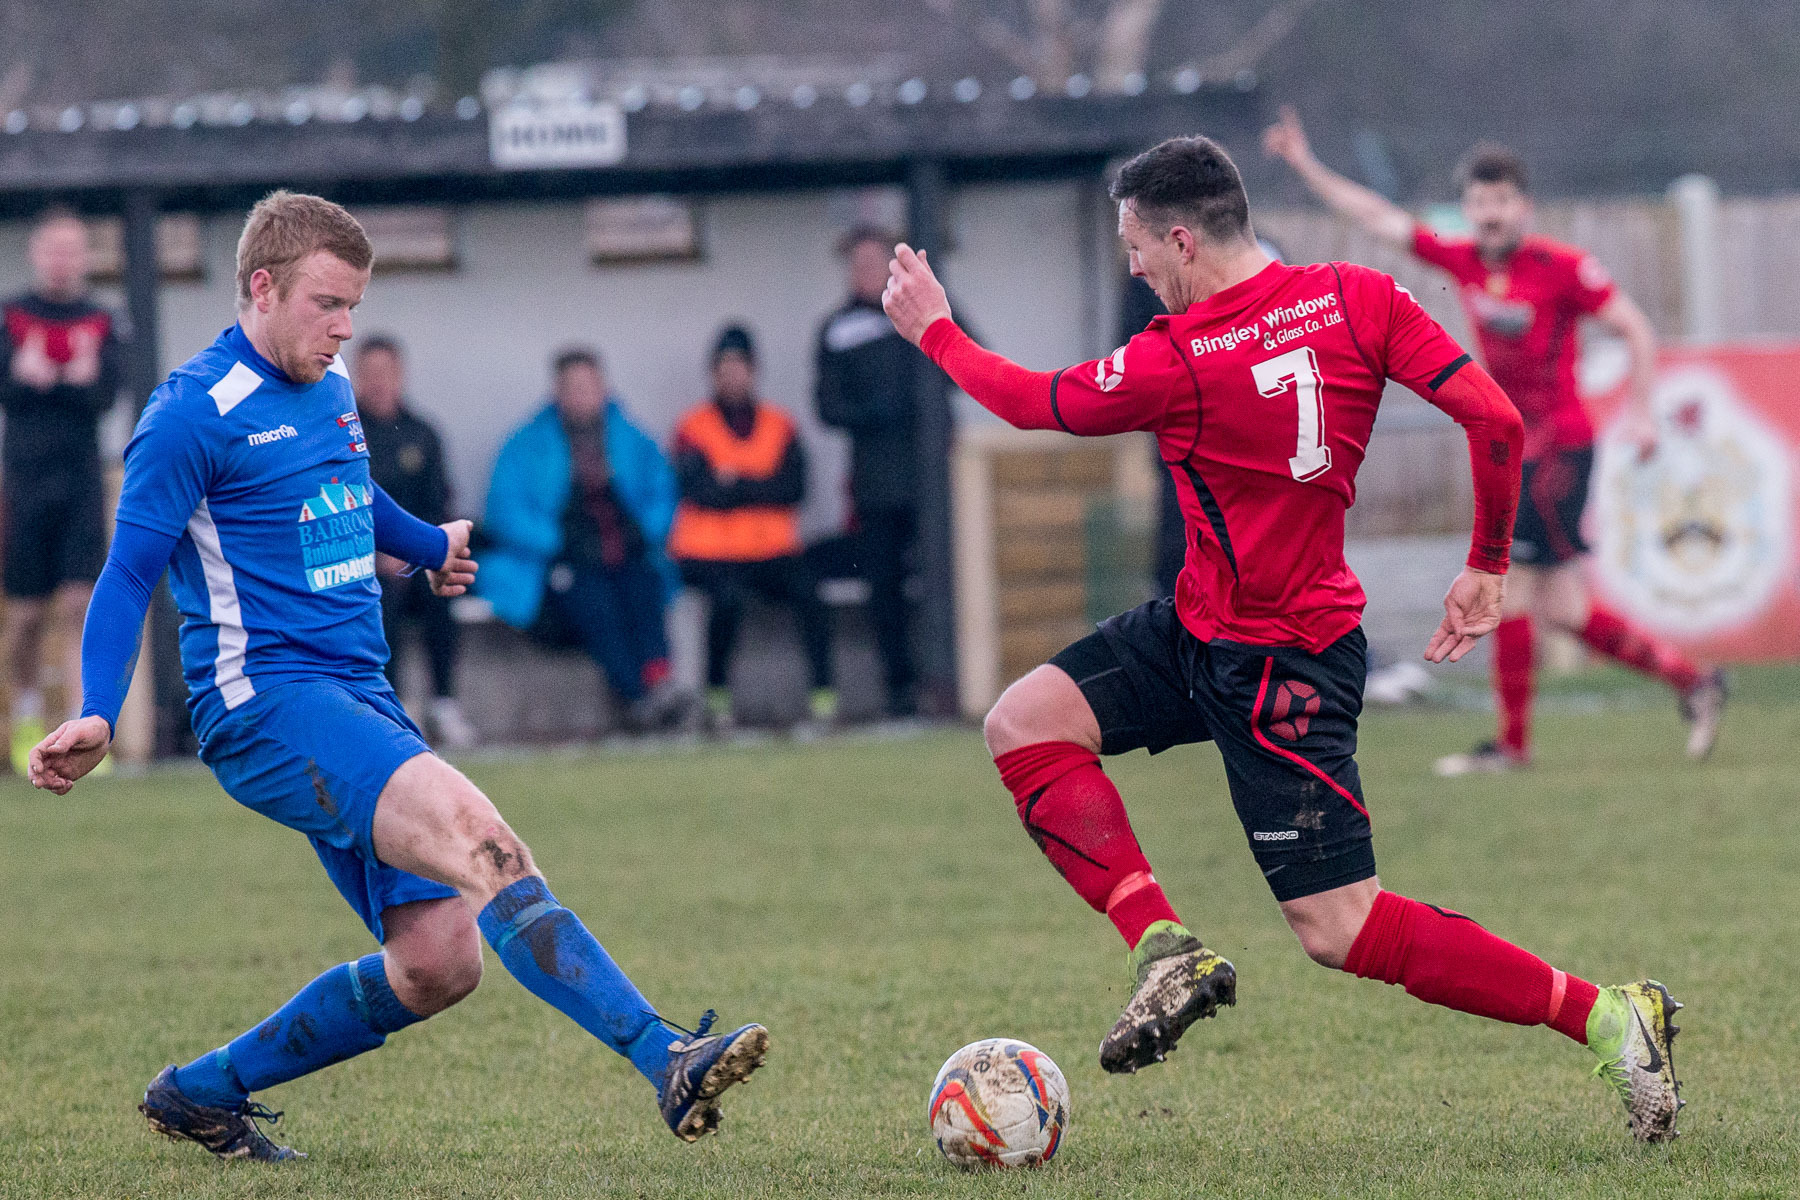 Silsden's Arley Barnes goes on the attack against Whitchurch as the club attracted their biggest crowd of the season   Picture: David Brett